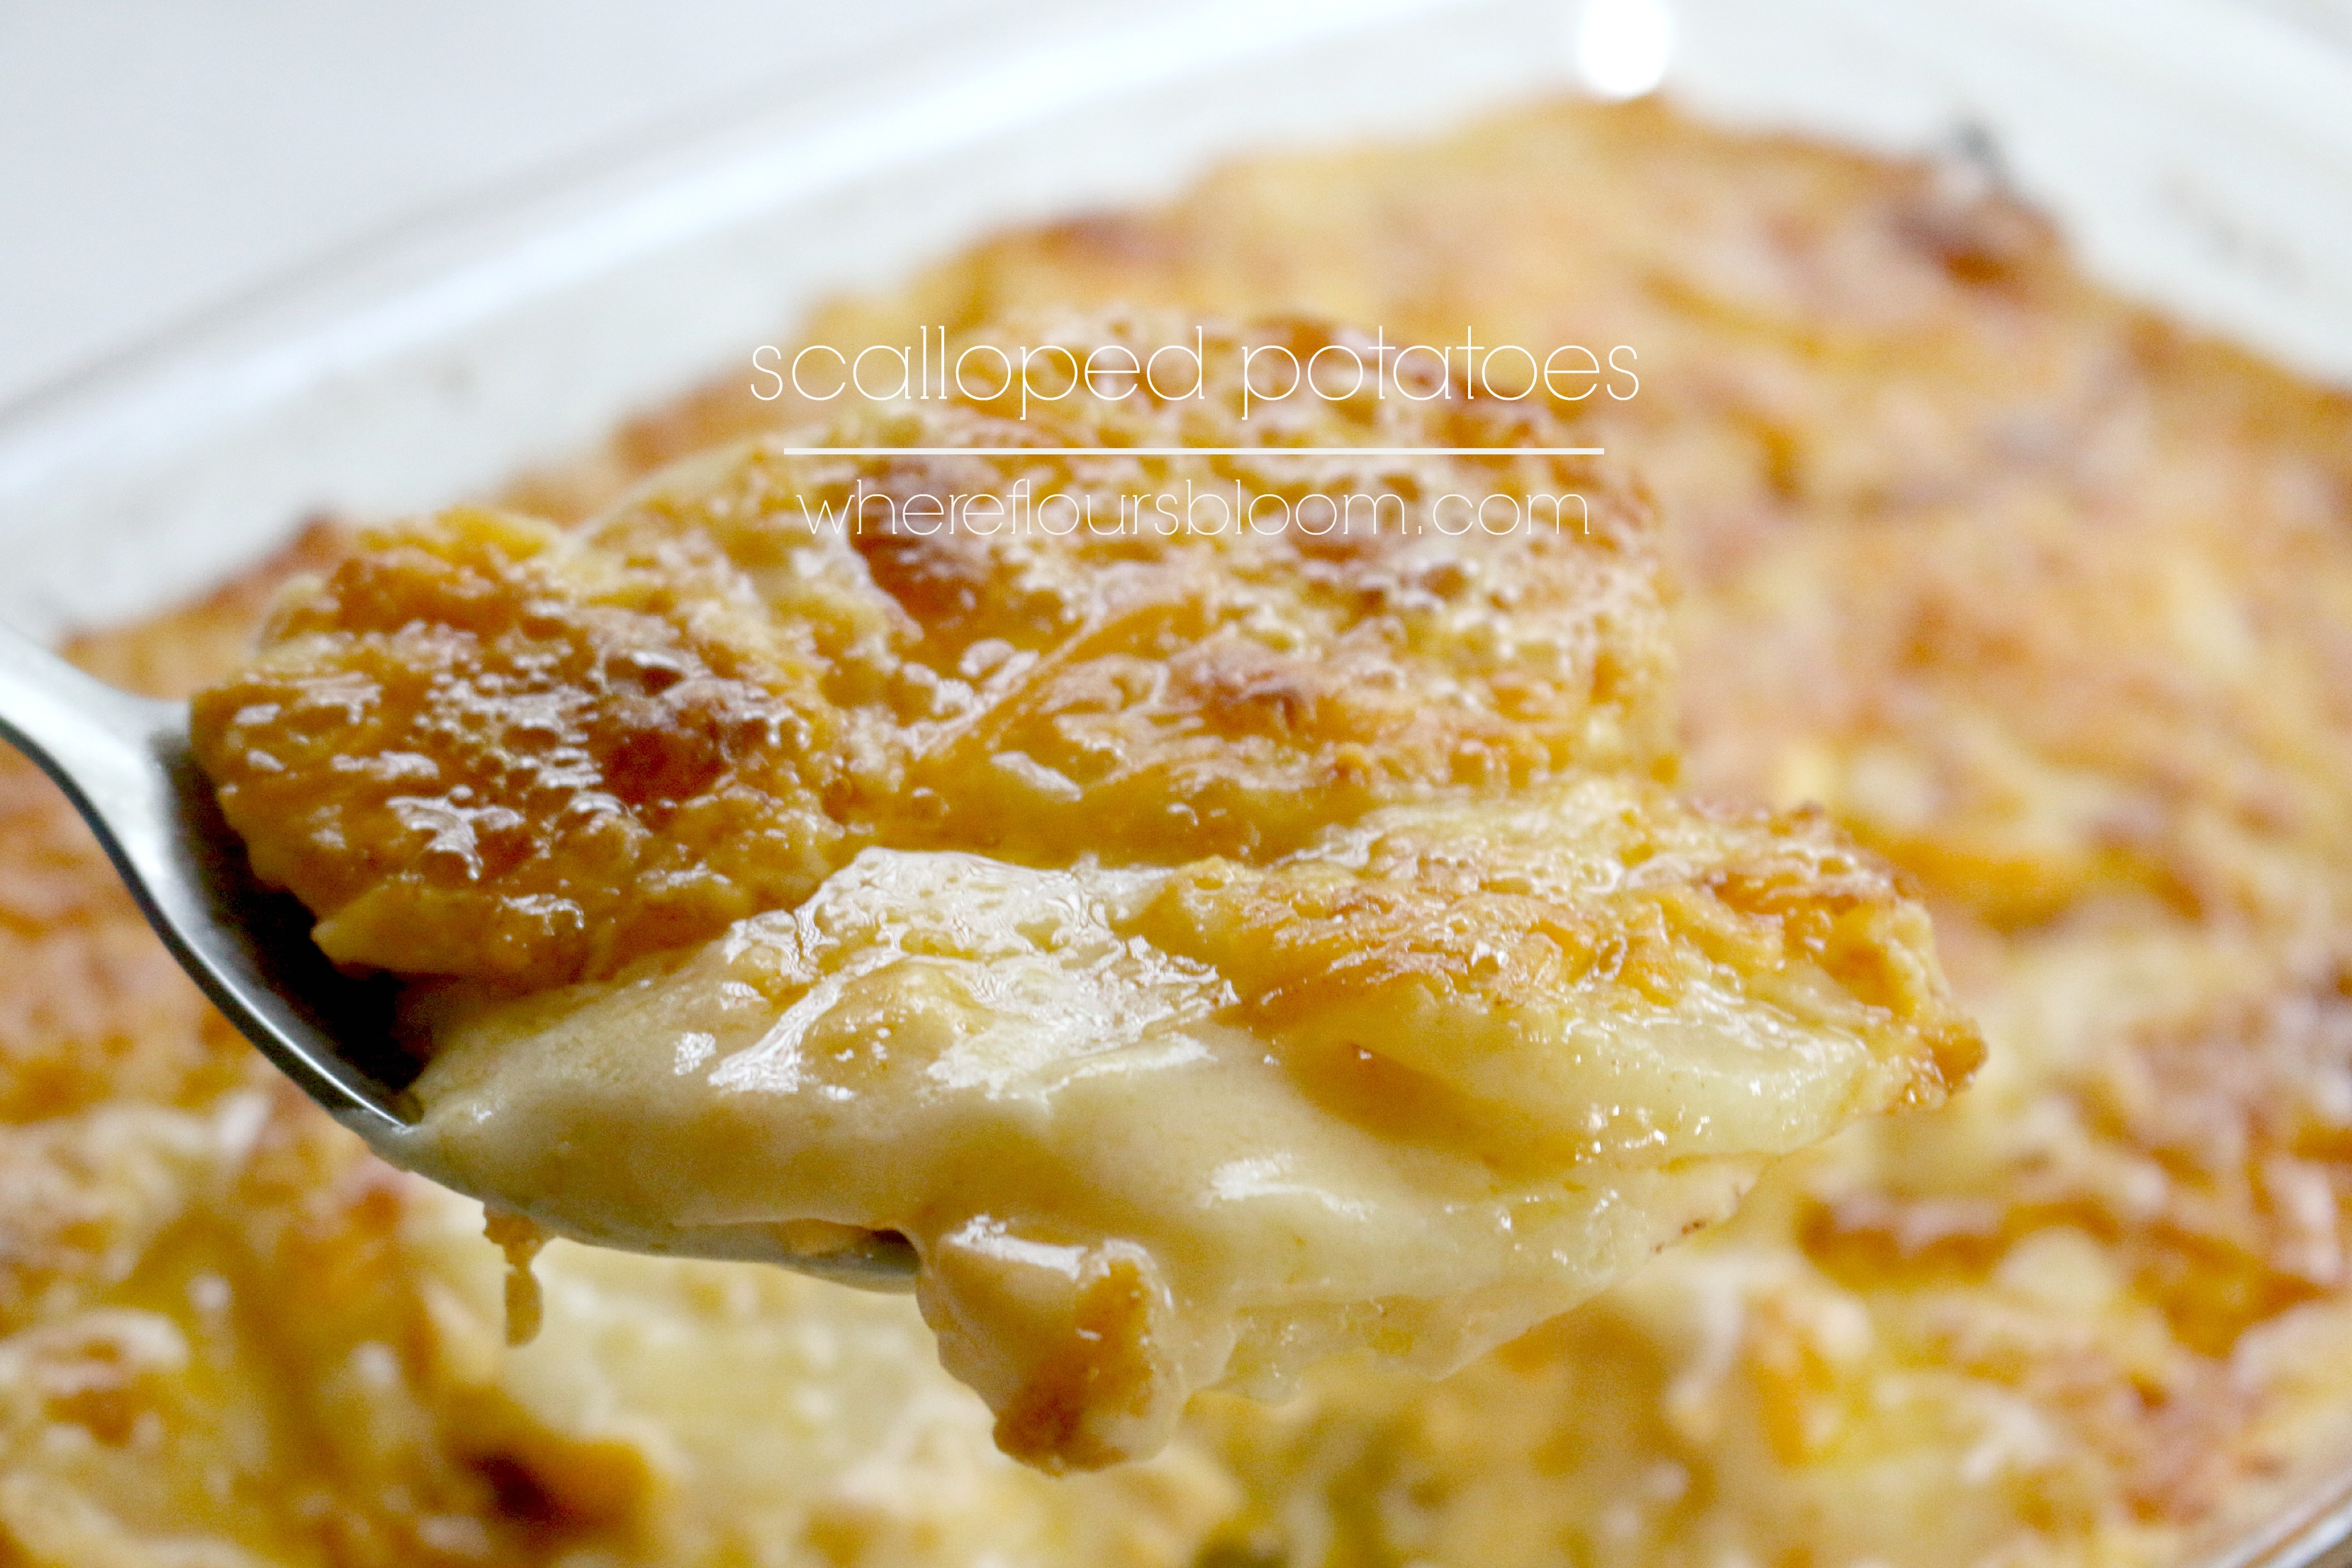 Scalloped Potatoes With Caramelized Onions Recipes — Dishmaps